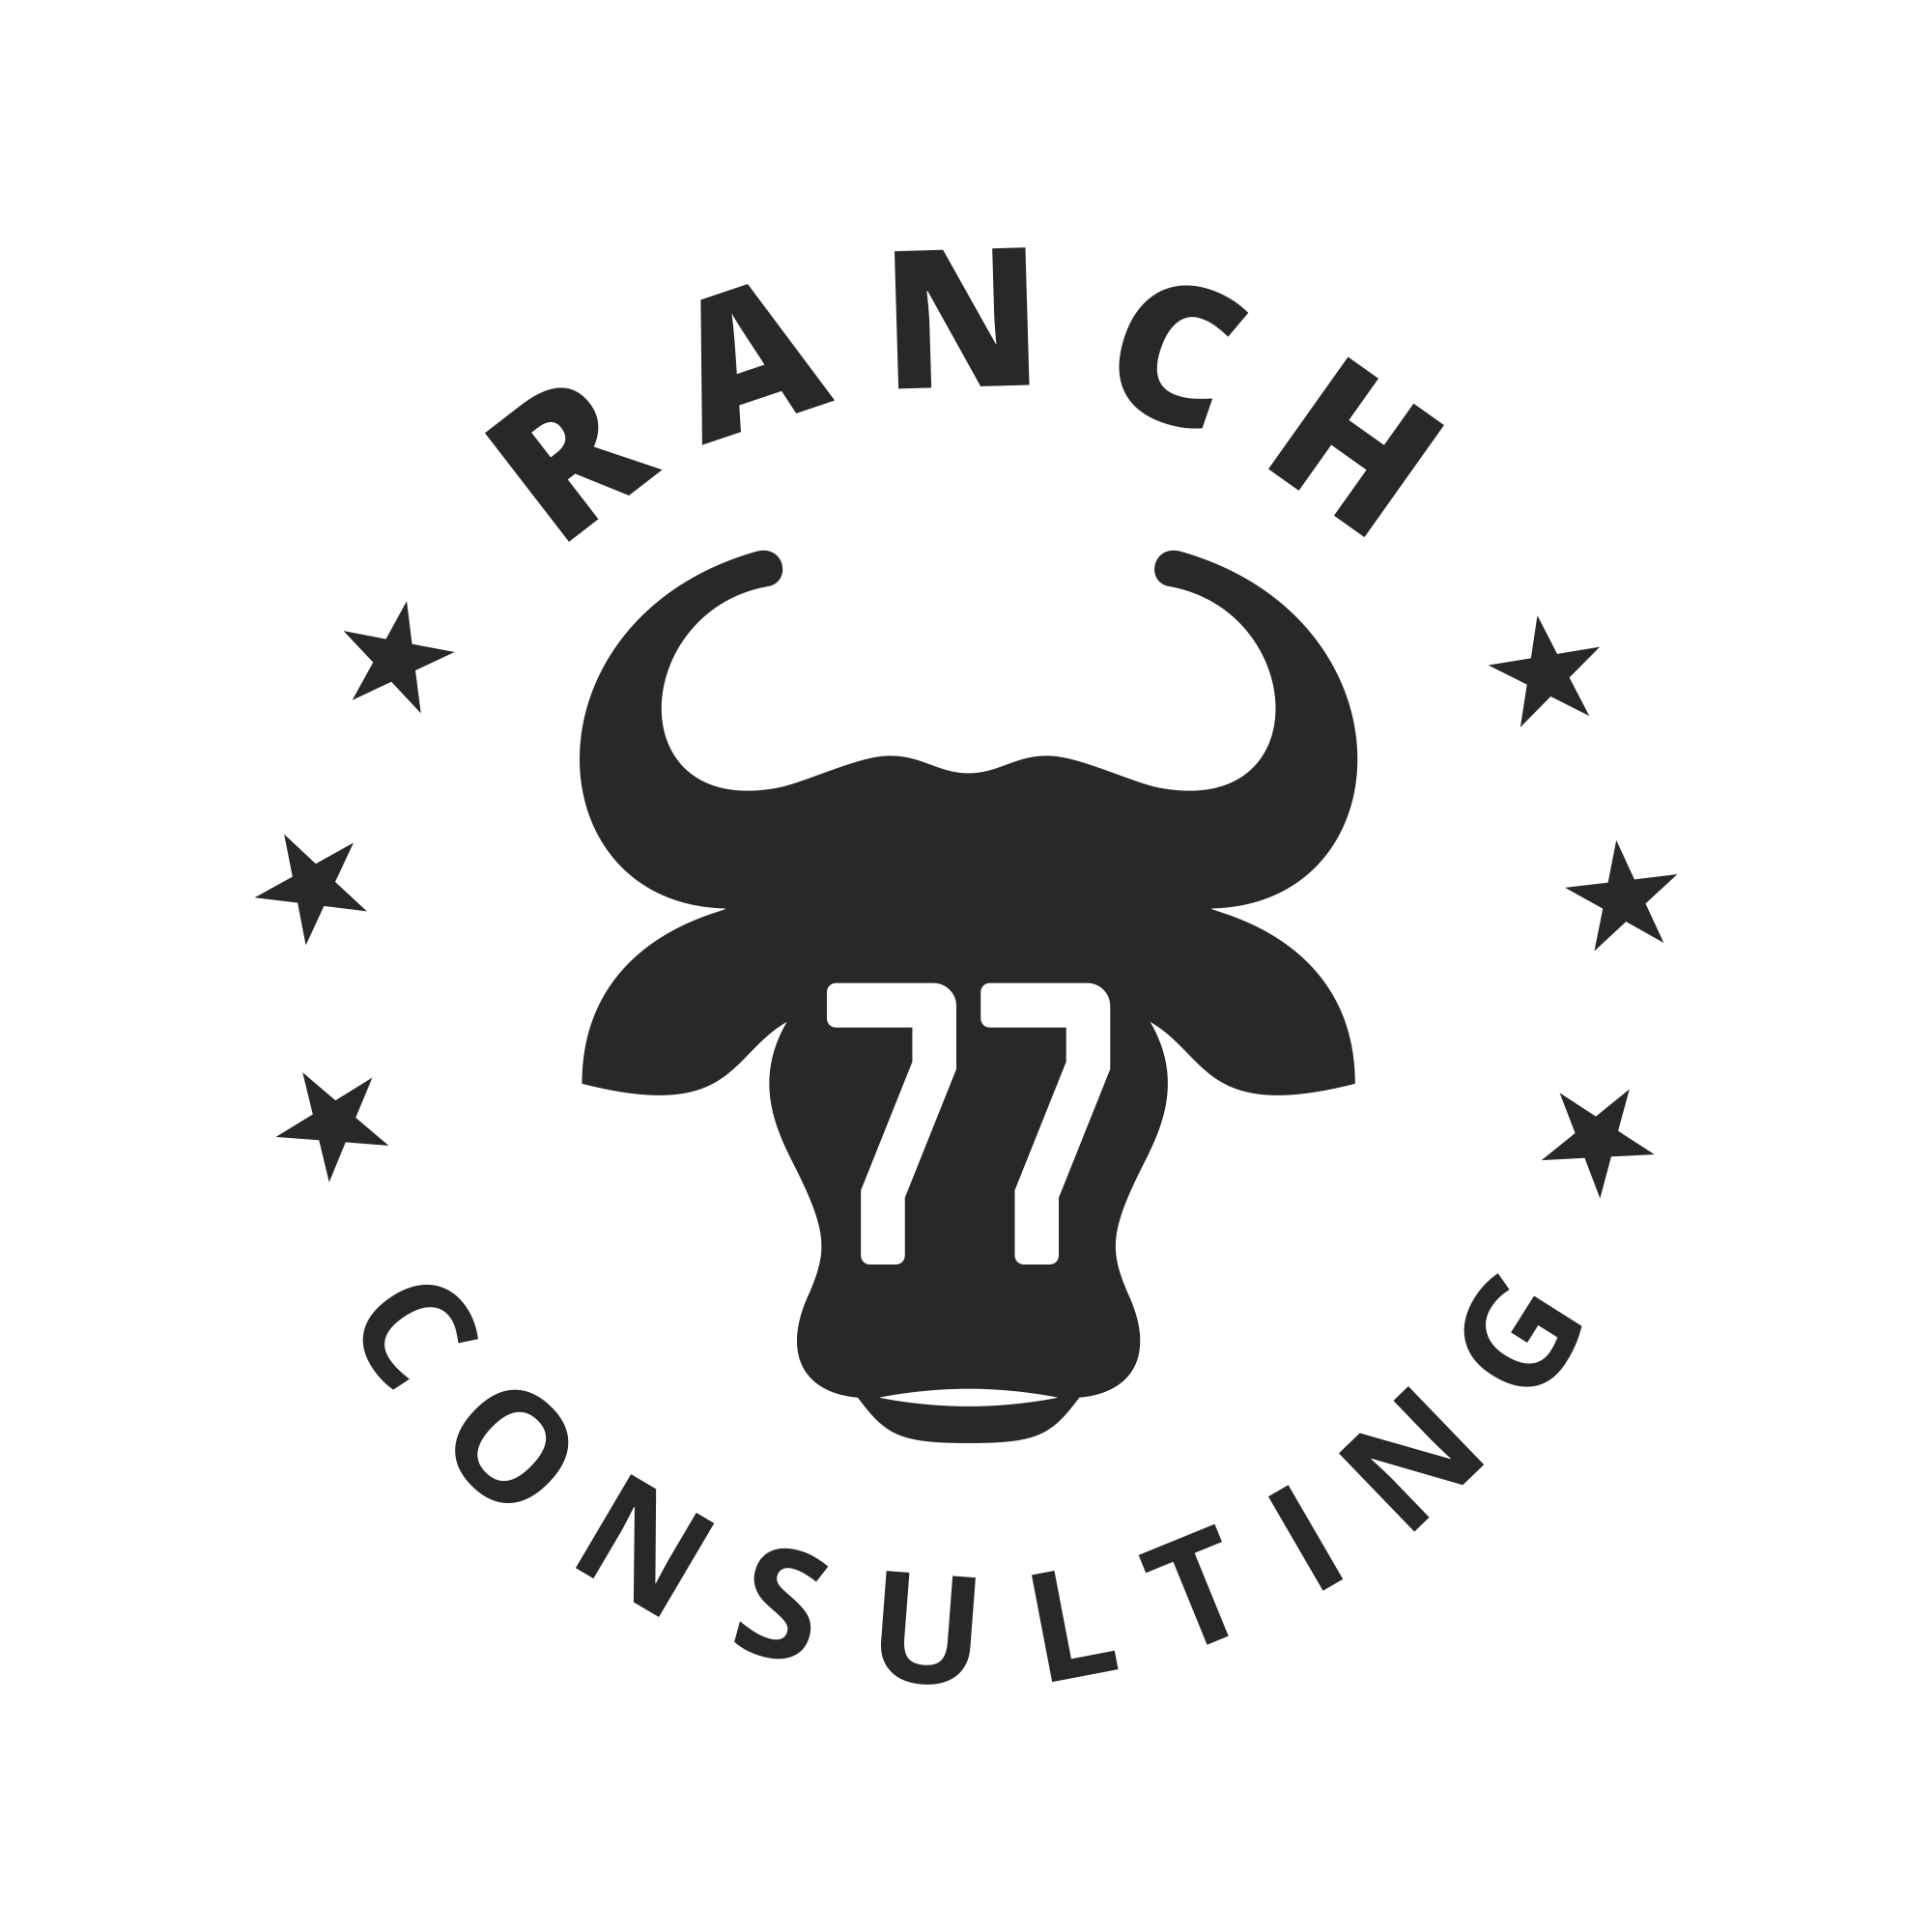 Craft a clean and crisp logo for an innovative consultant